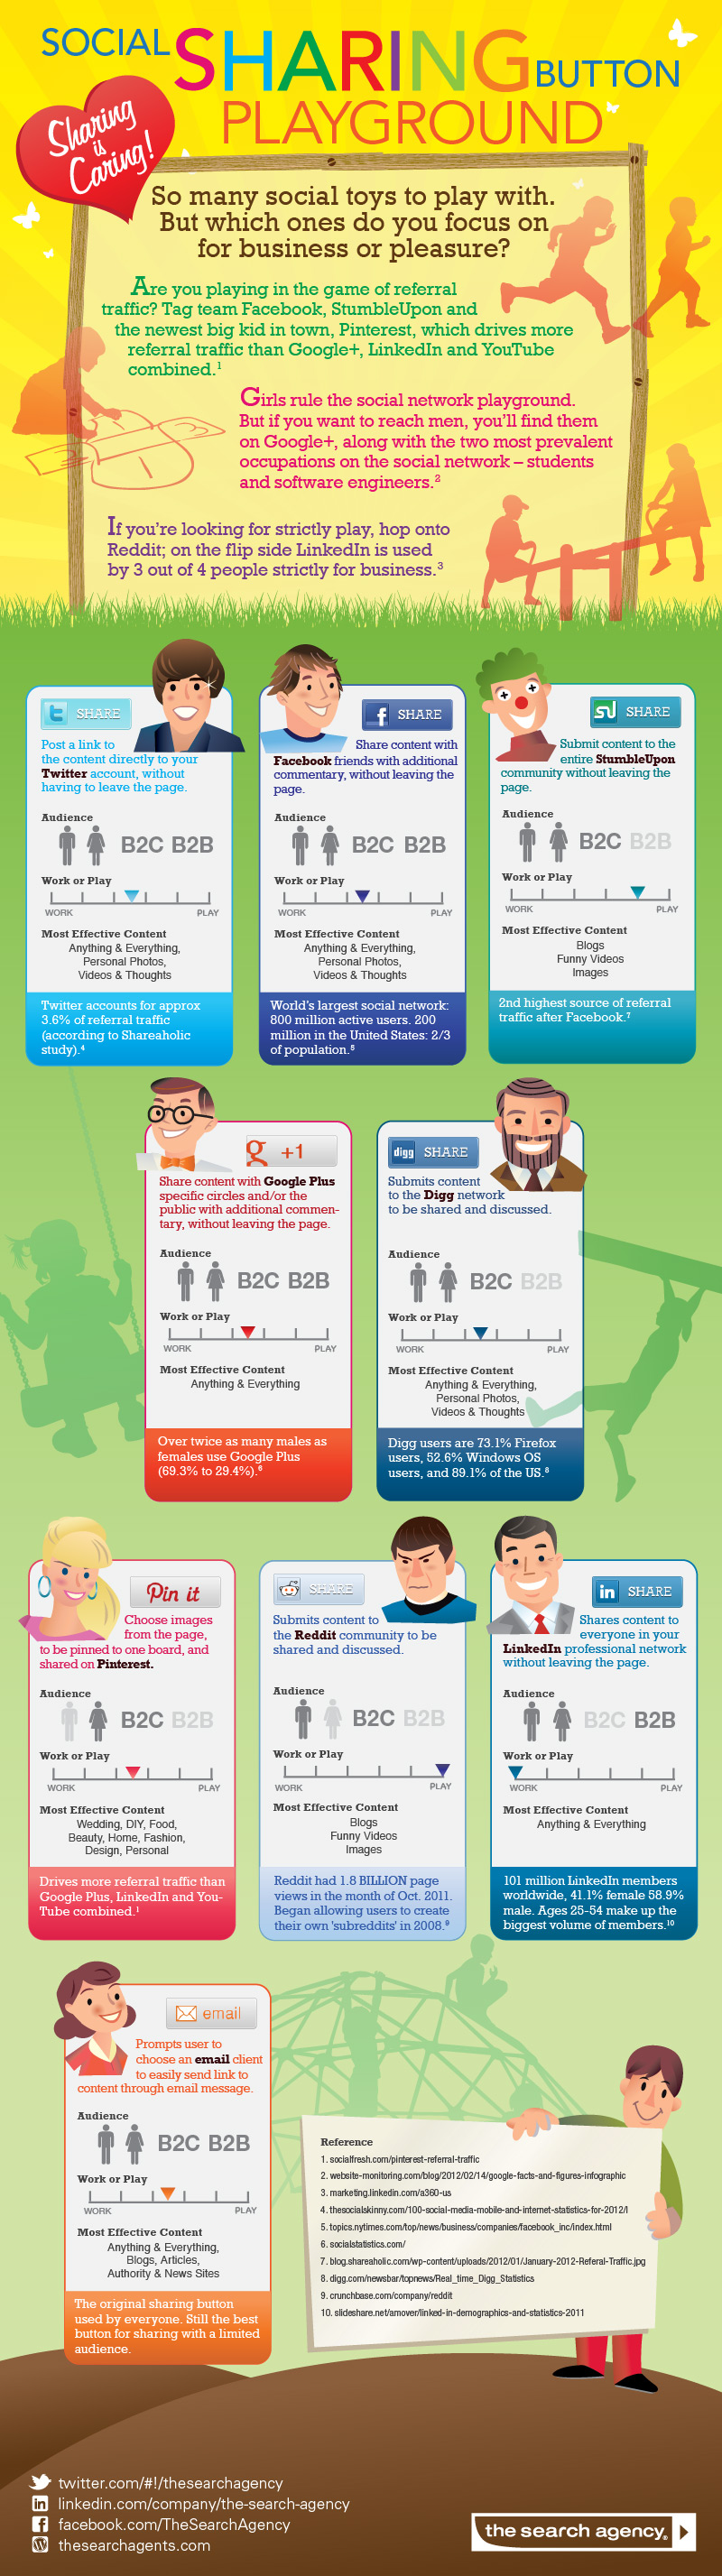 Social-Sharing-Button-Playground-infographic